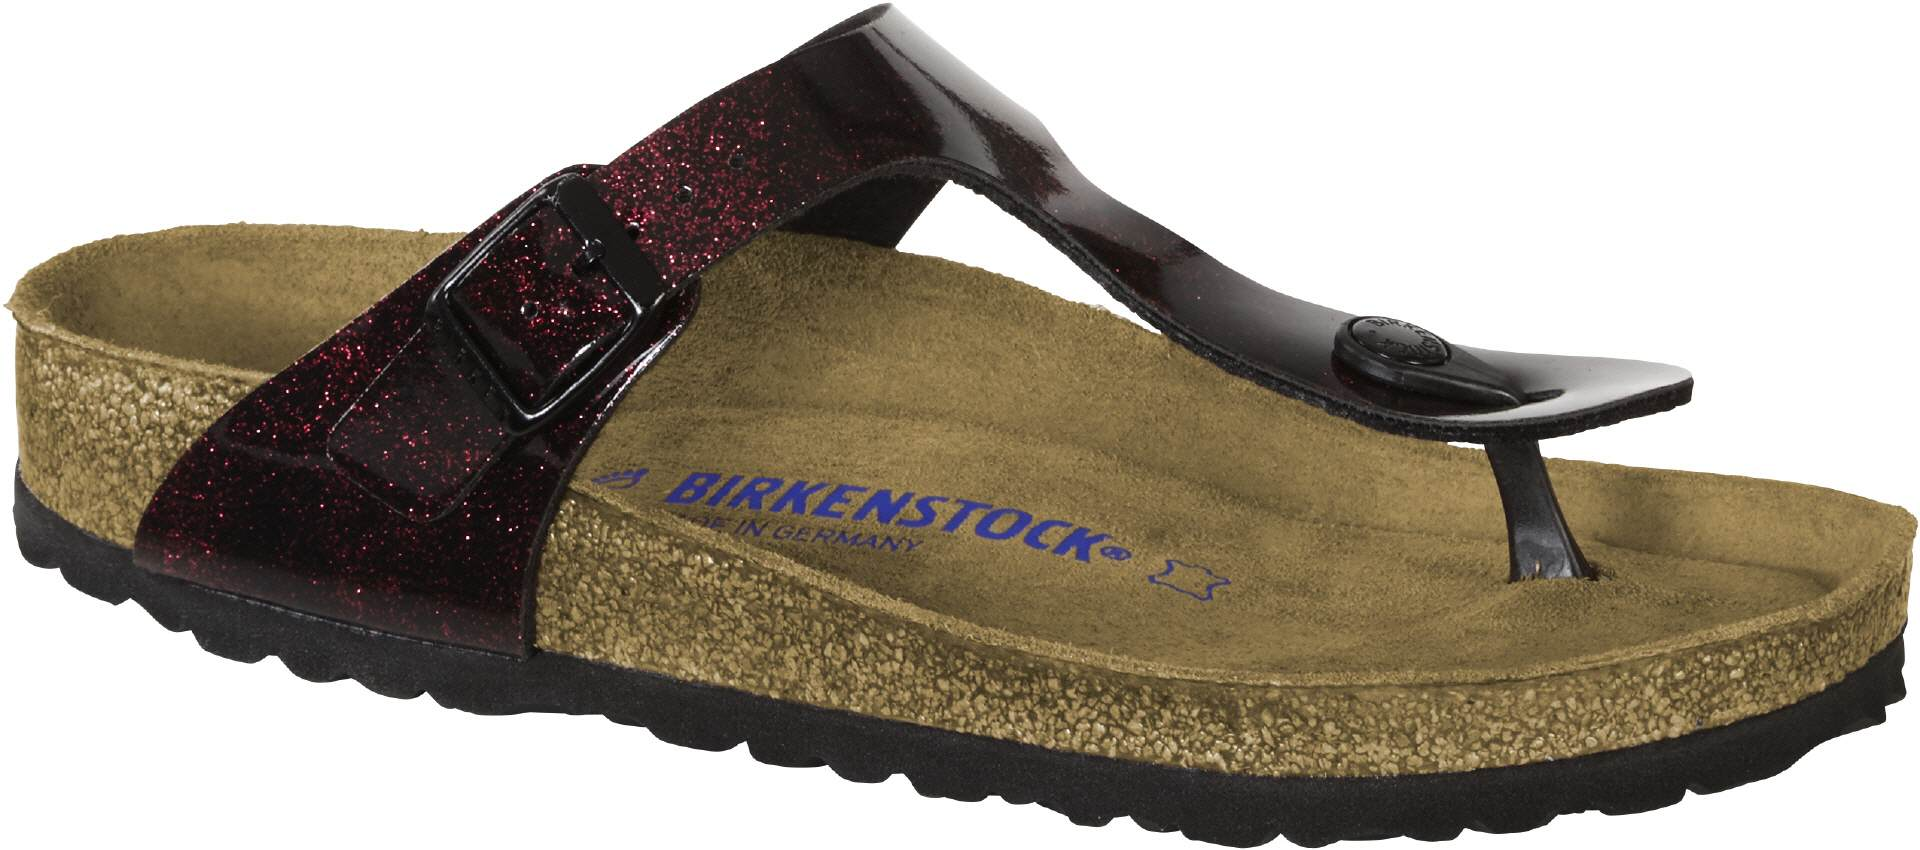 36f3dc7891f Birkenstock Gizeh SFB BF Iride Strong Red